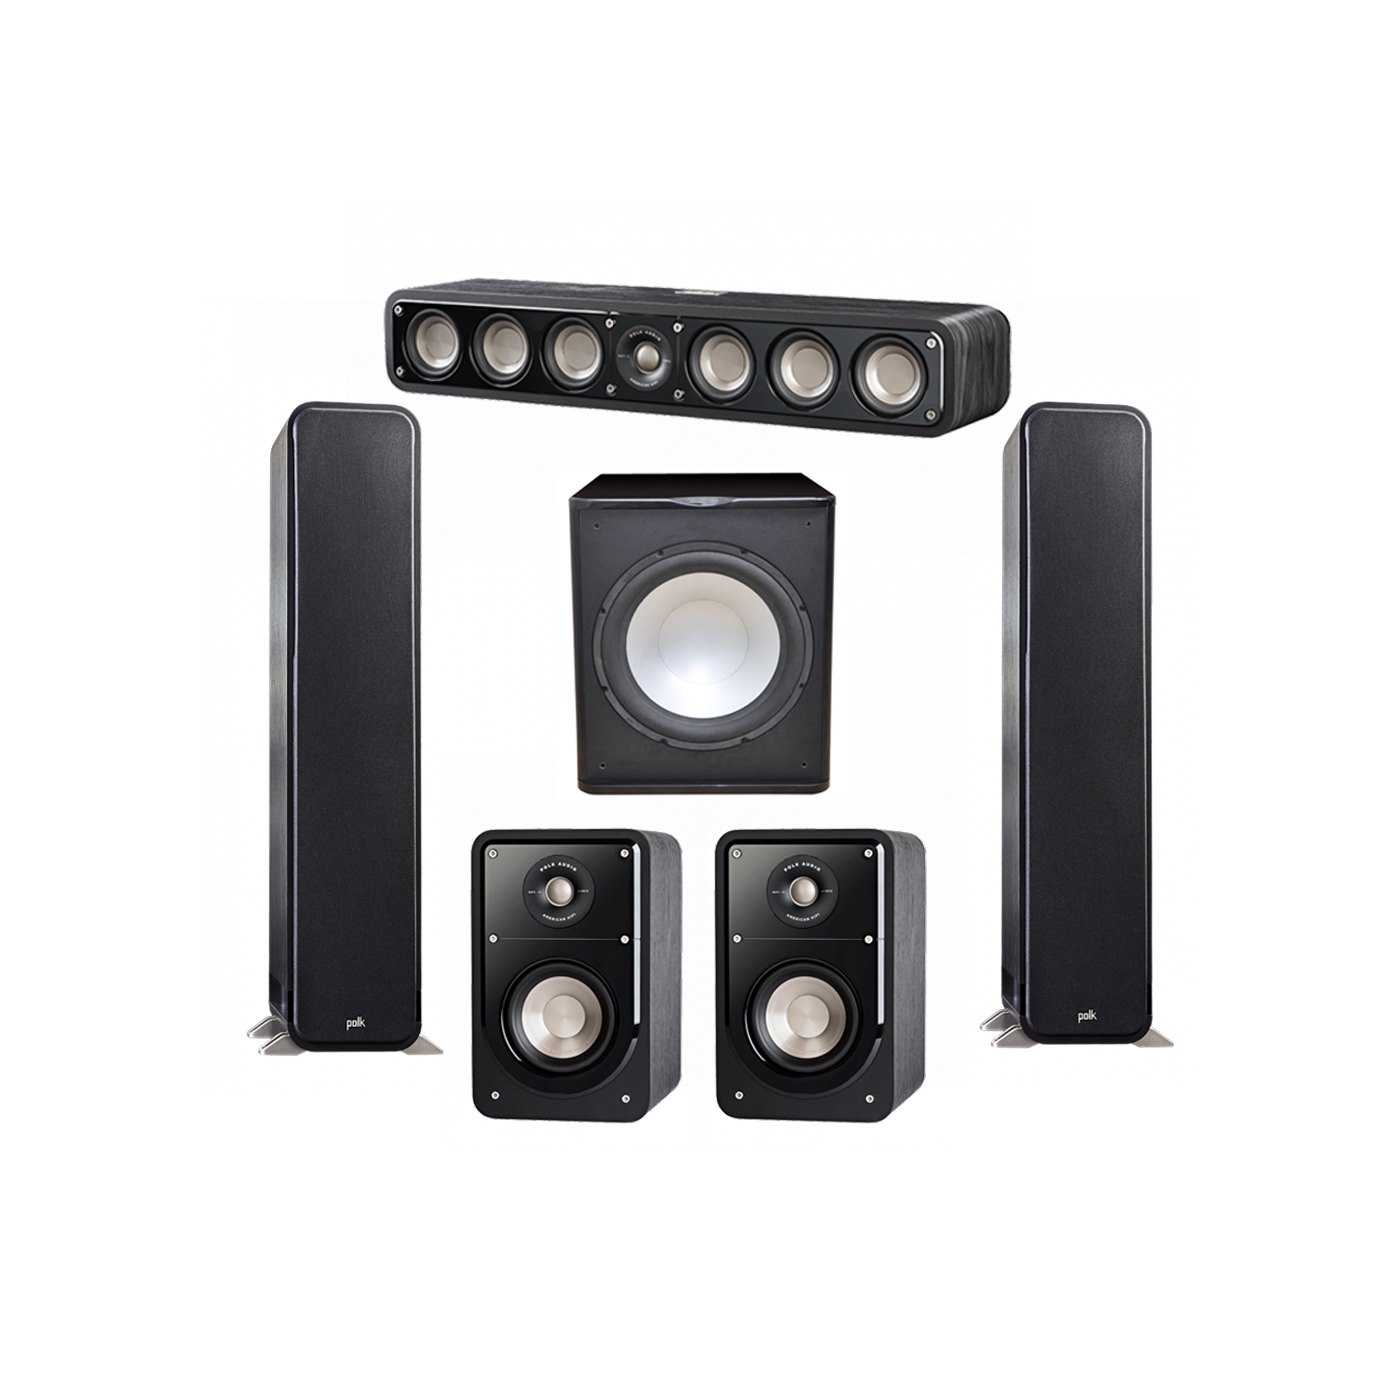 Polk Audio Signature 5.1 System with 2 S55 Tower Speaker, 1 Polk S35 Center Speaker, 2 Polk S15 Bookshelf Speaker, 1 Premier Acoustic PA-150 Powered Subwoofer